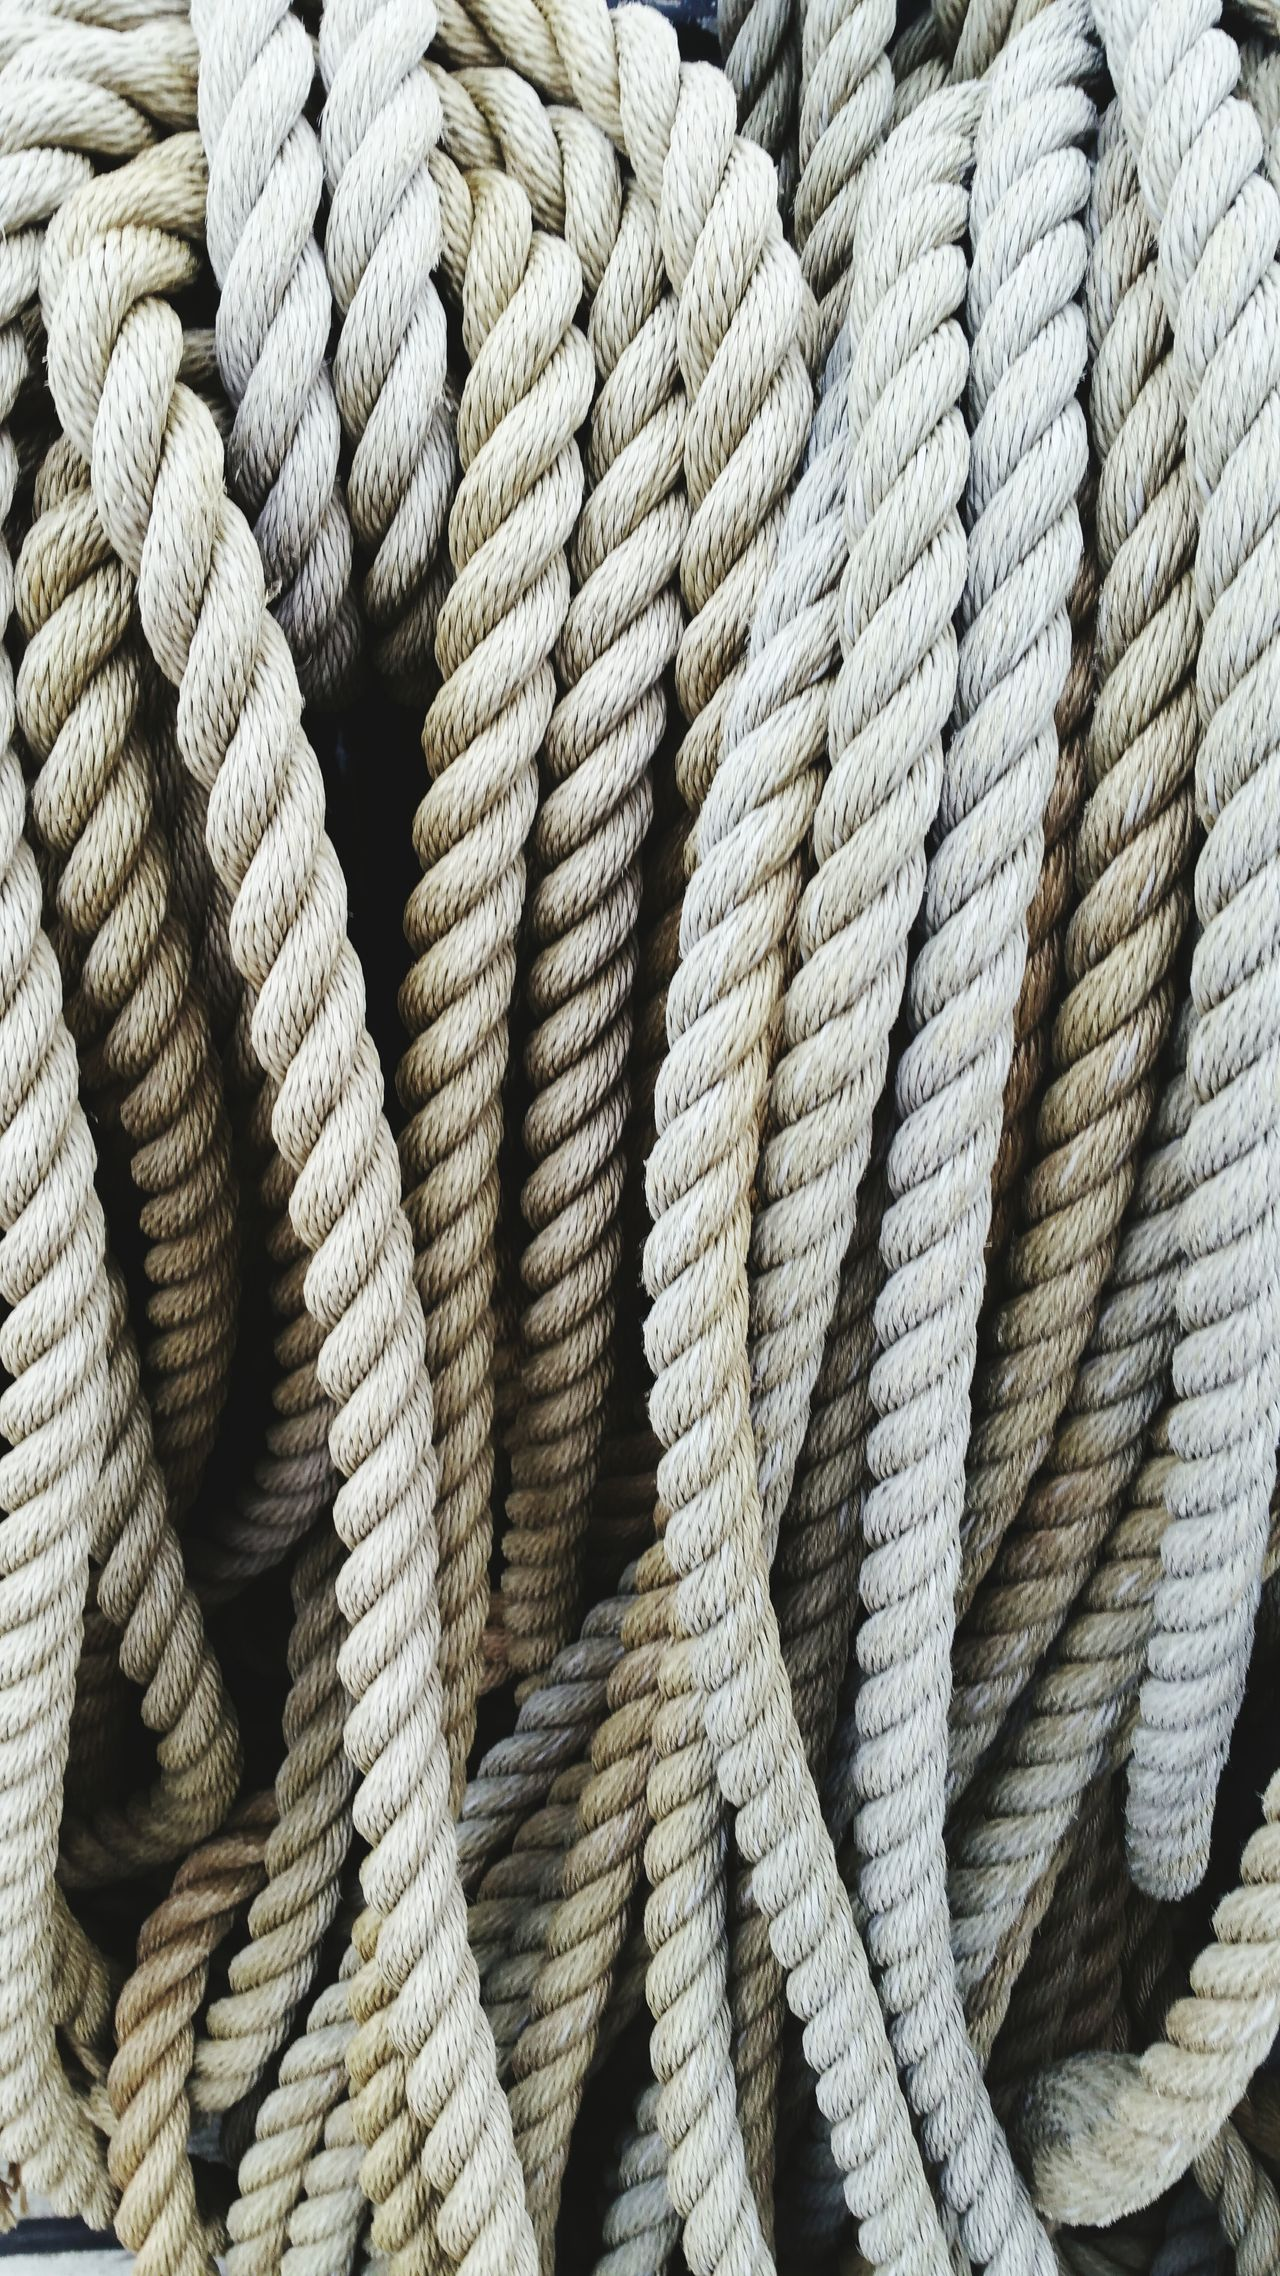 Textures And Surfaces Rope Close-up Nautical Equipment Thick Twist Tool White Grey Strong Sealife Art